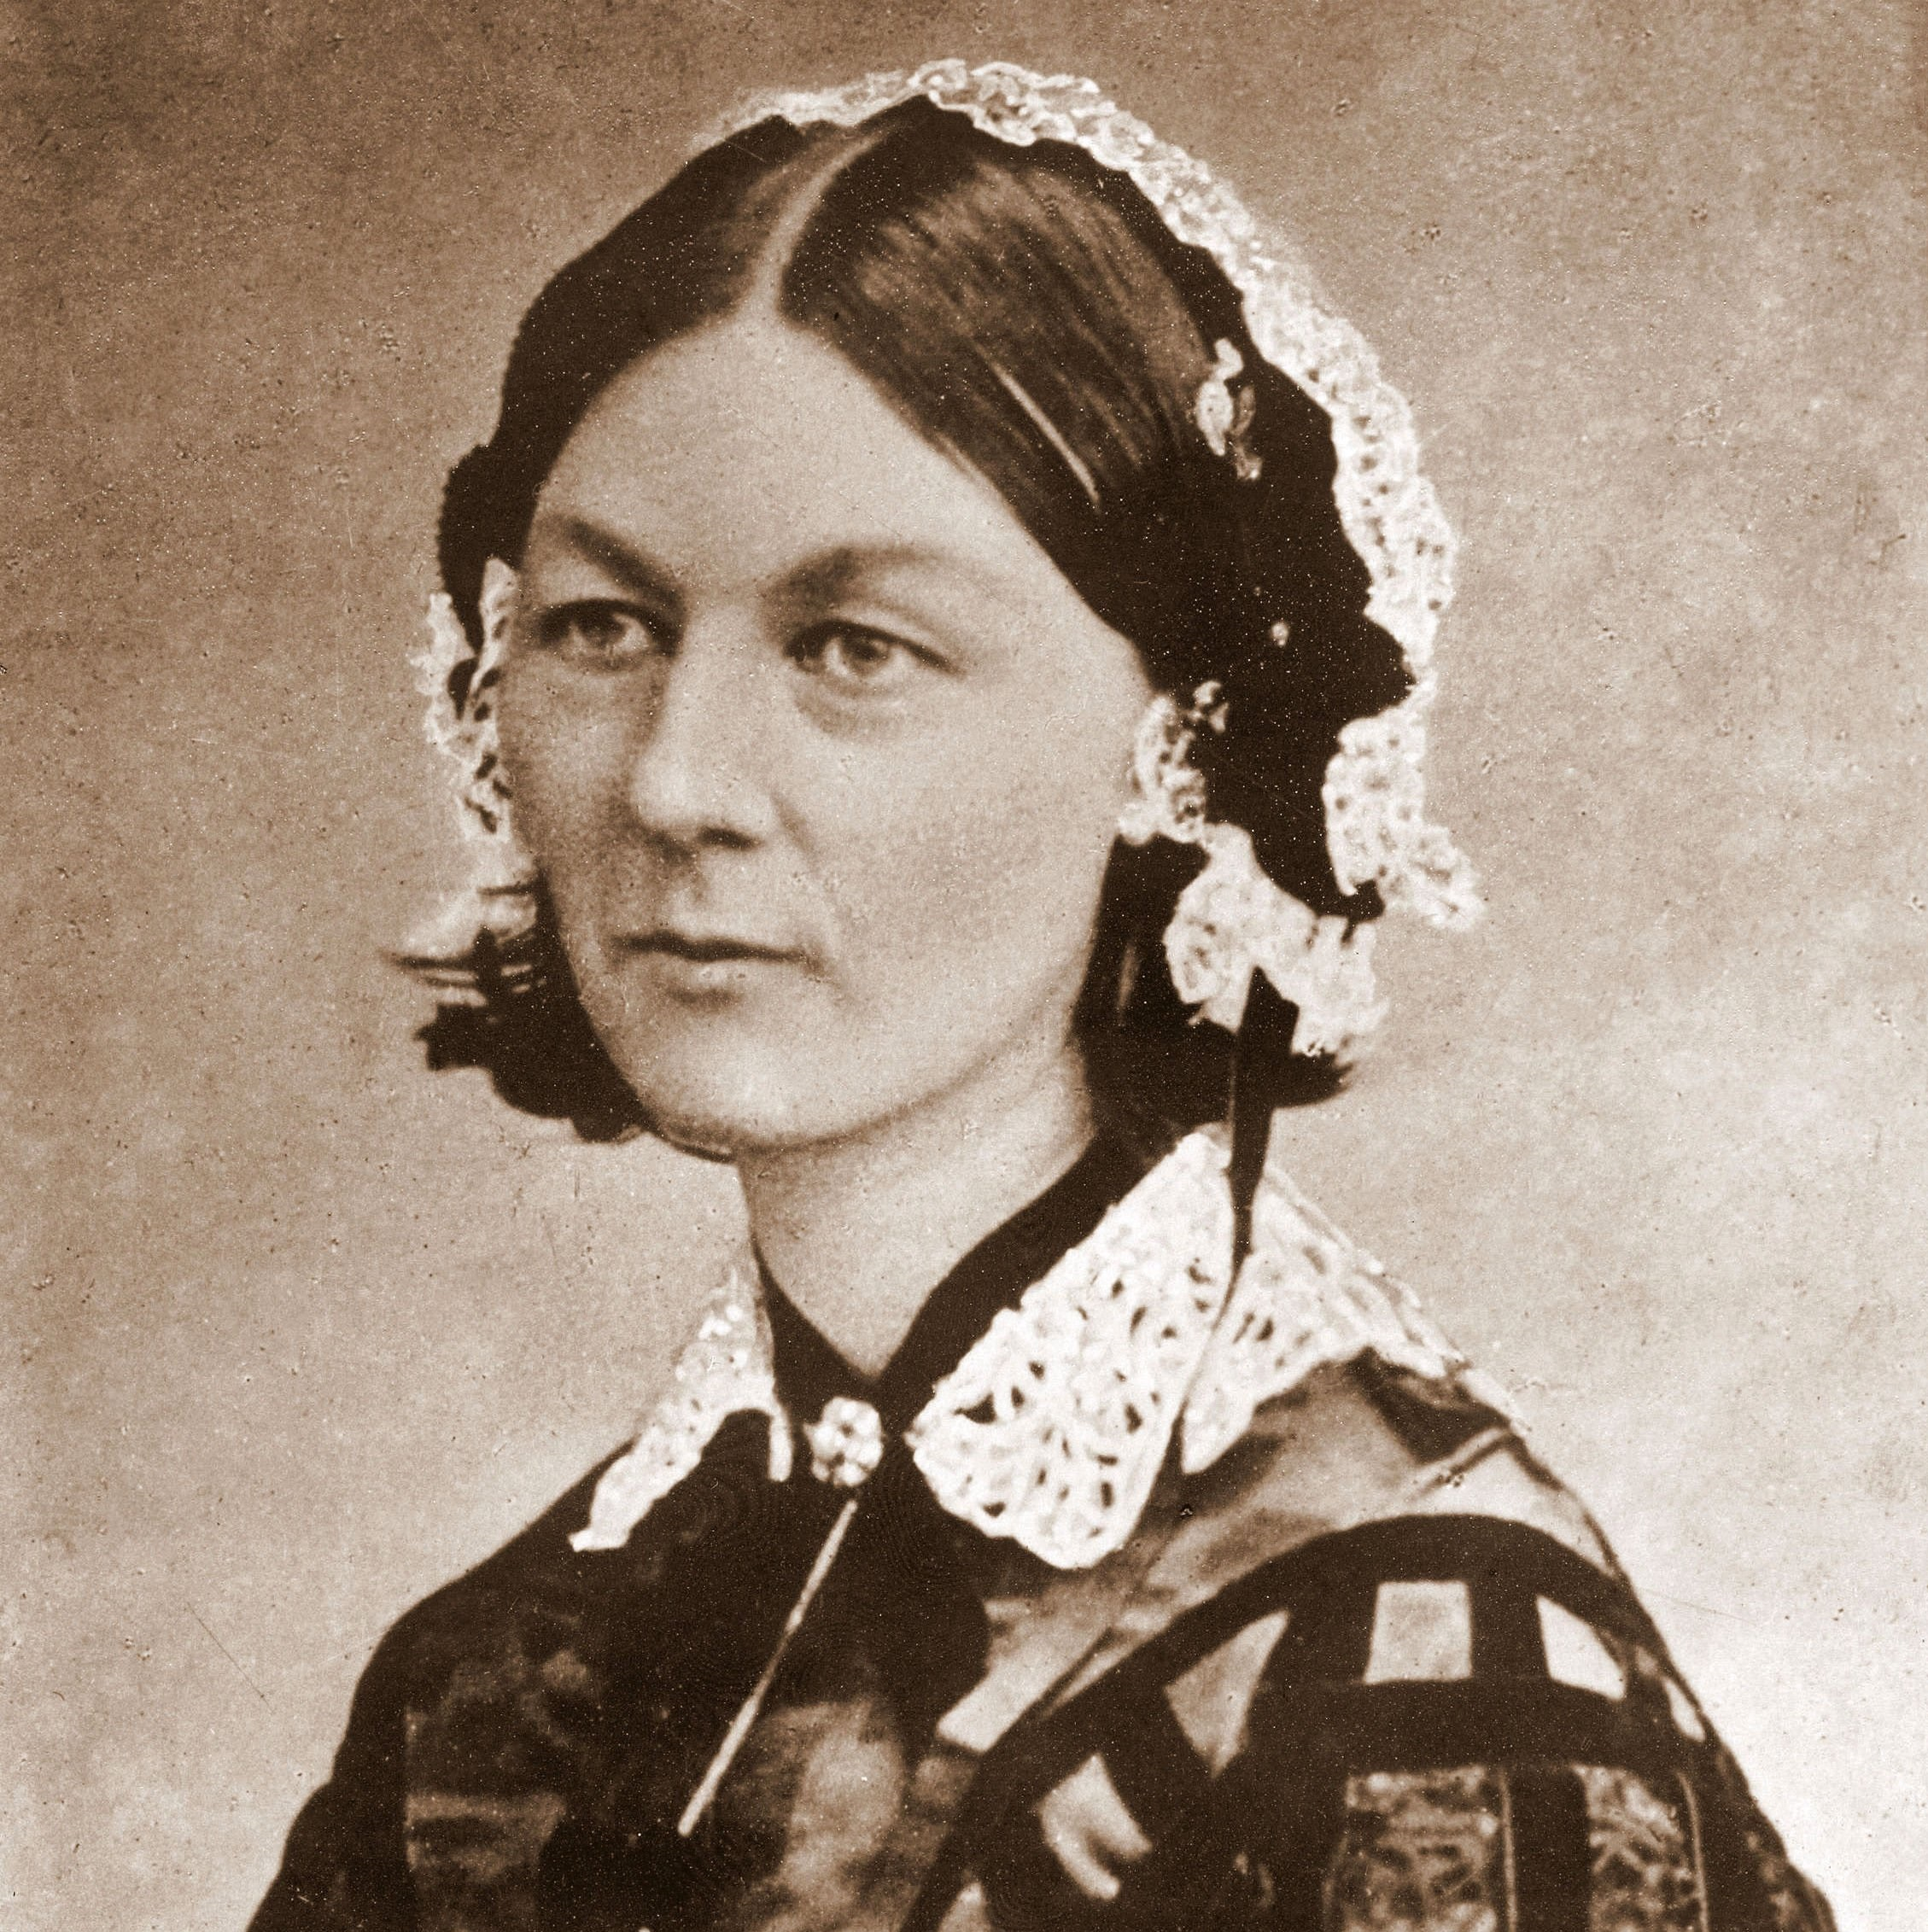 a580f1b565a Victorian nurse likely costume choice | Otago Daily Times Online News